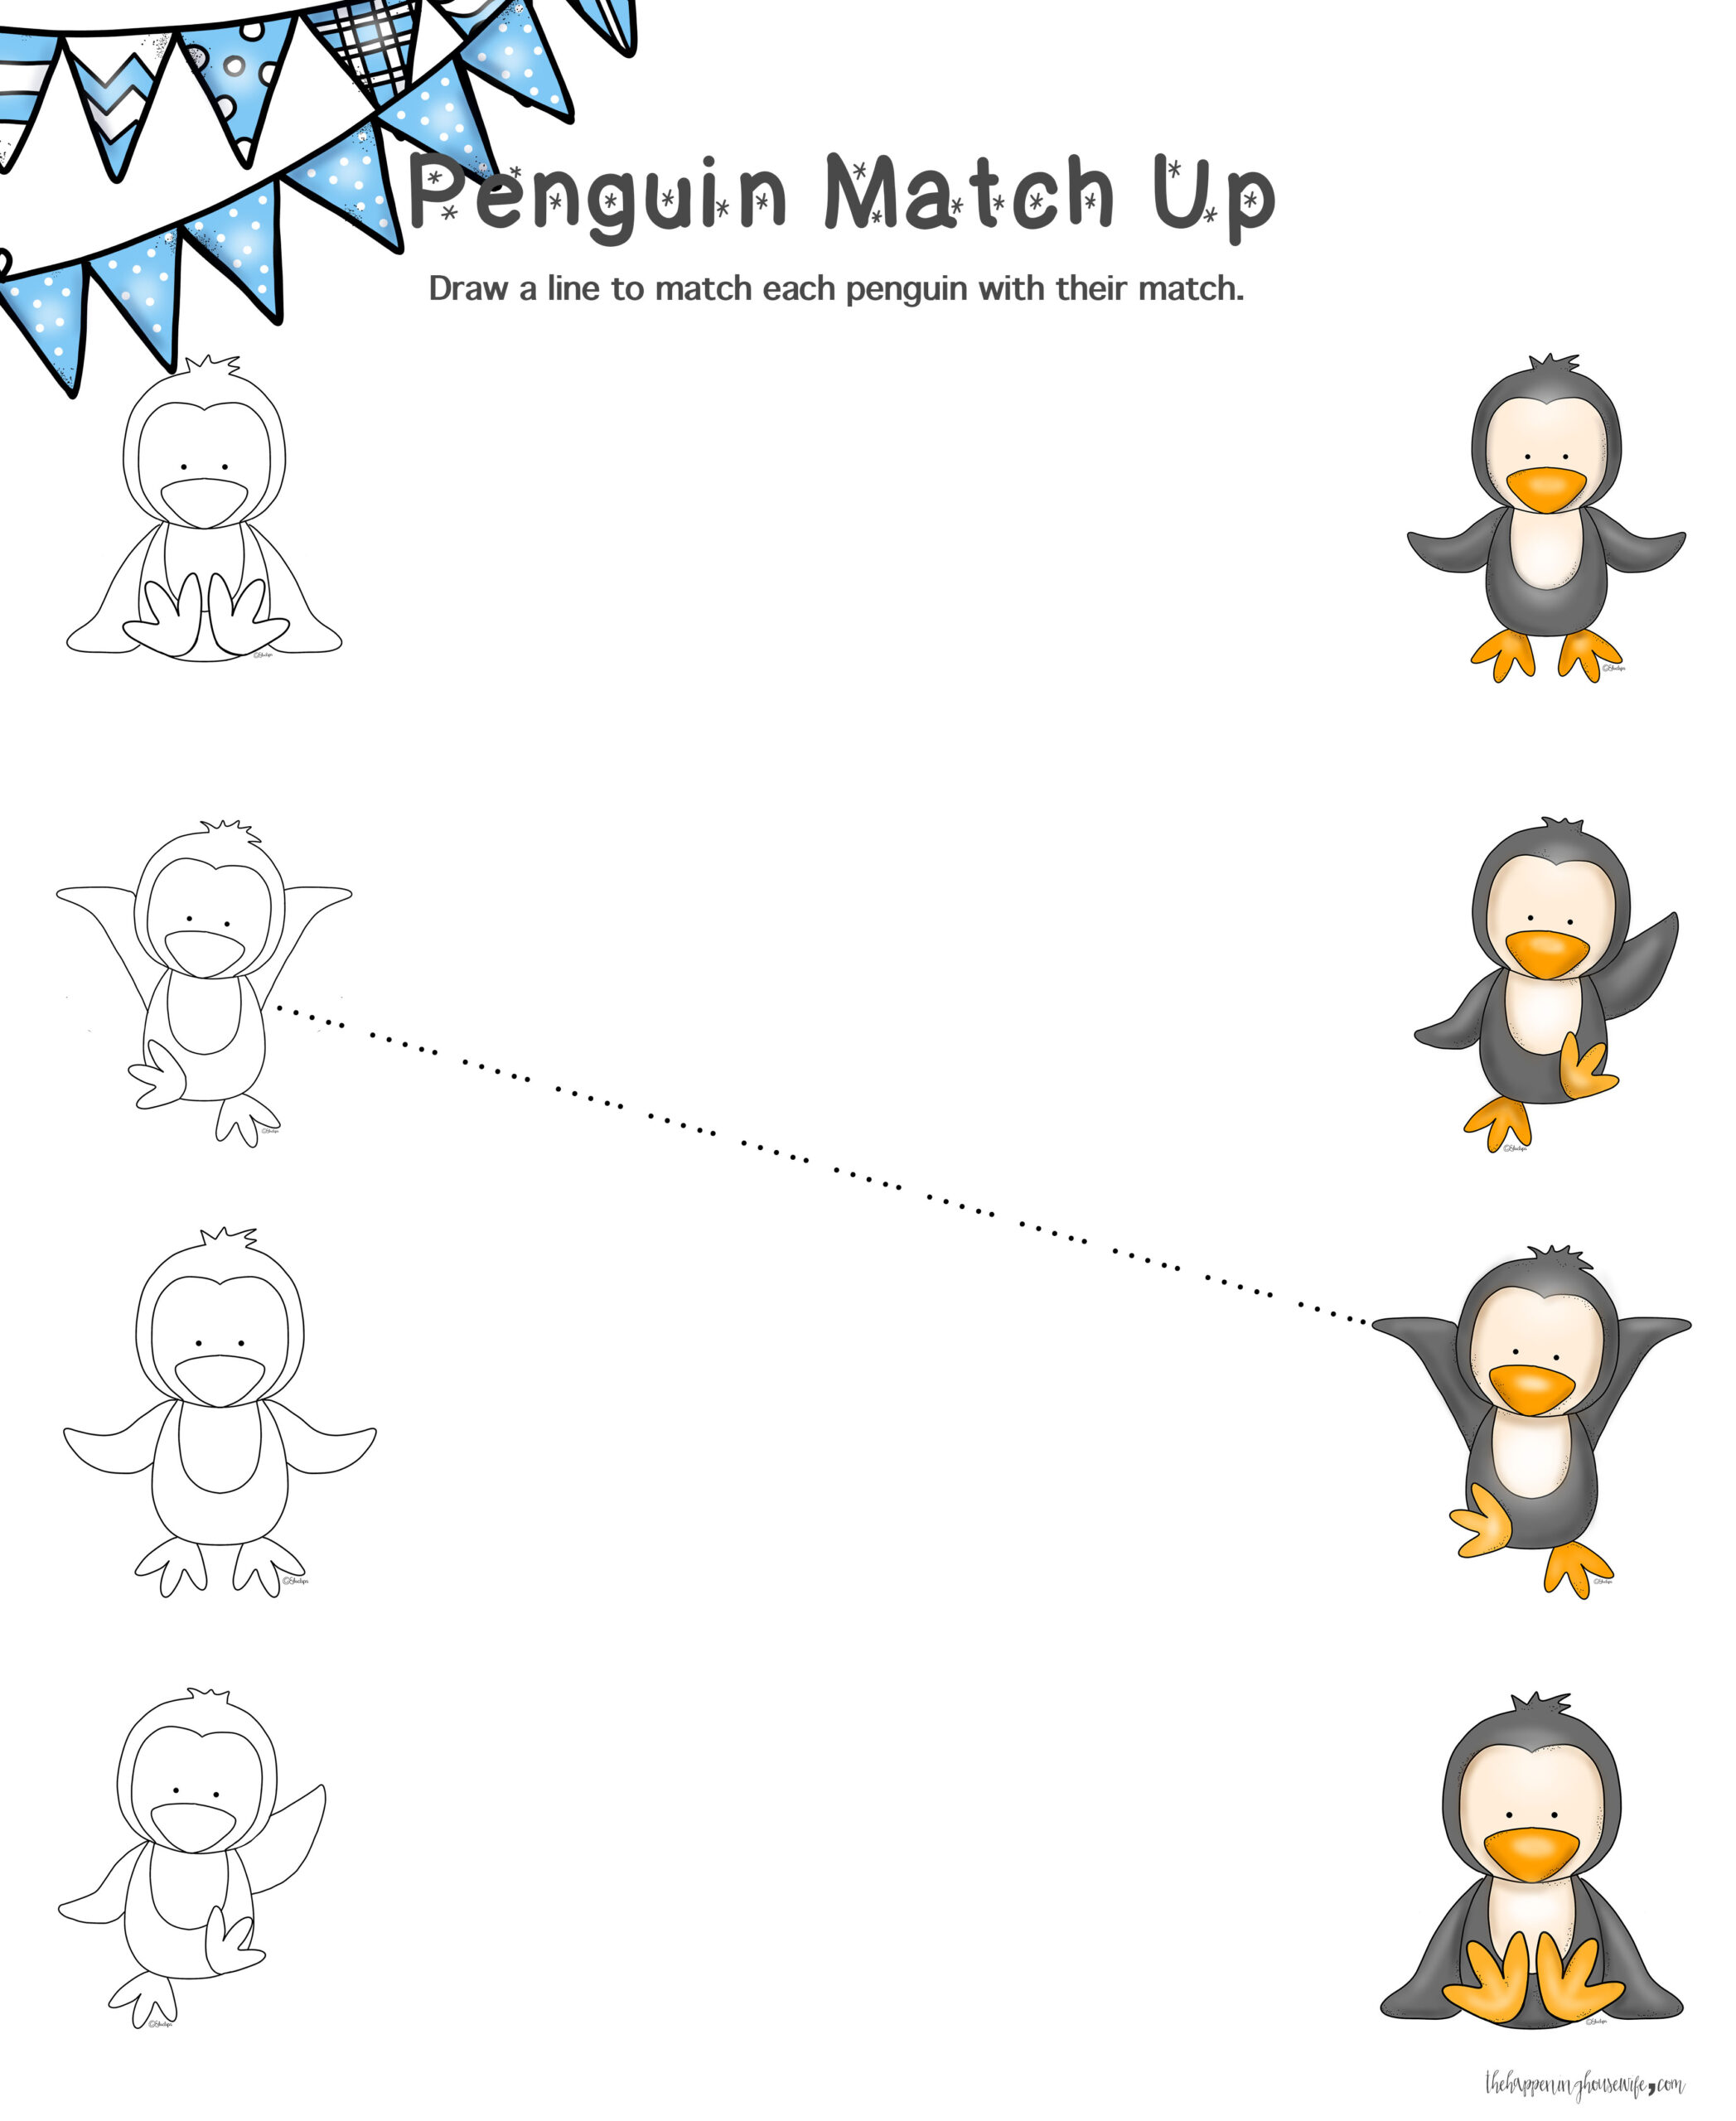 Penguin Match Up.jpg